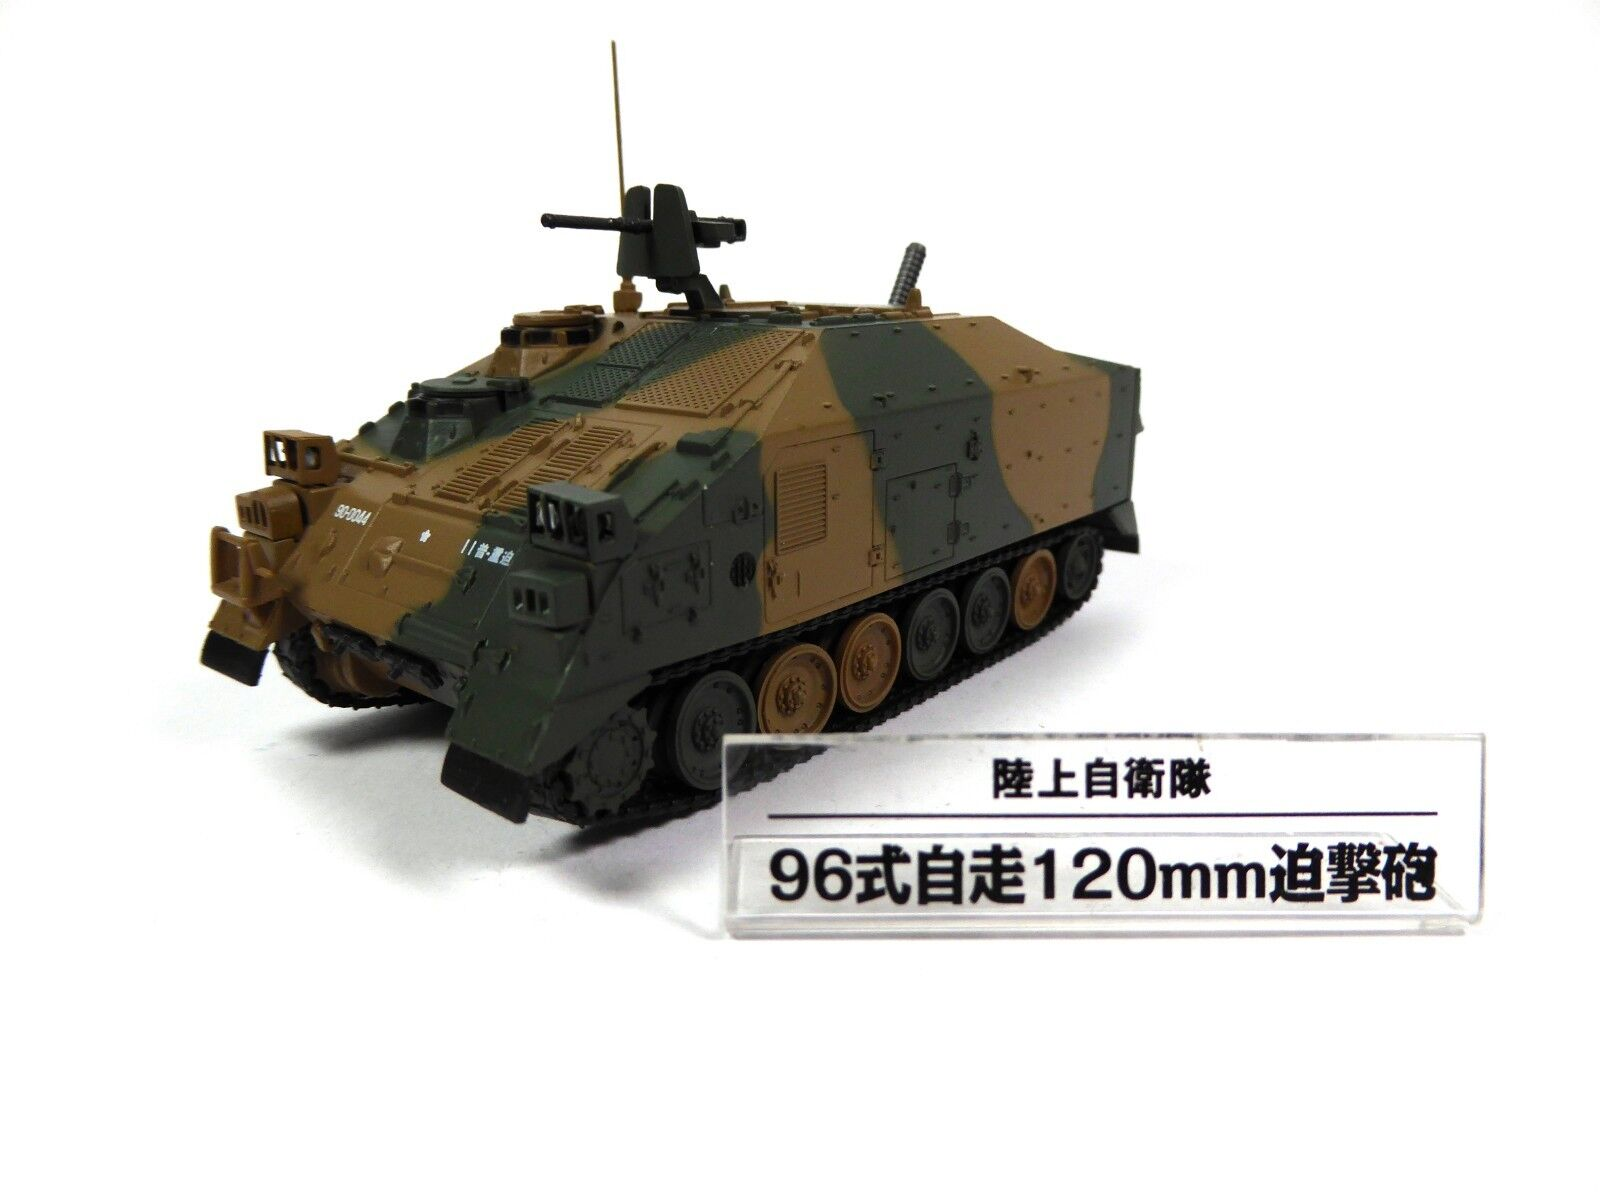 Tank Type 96 120 MSP - 1 72 JGSDF Japan Self-Defense - Military vehicle SD34